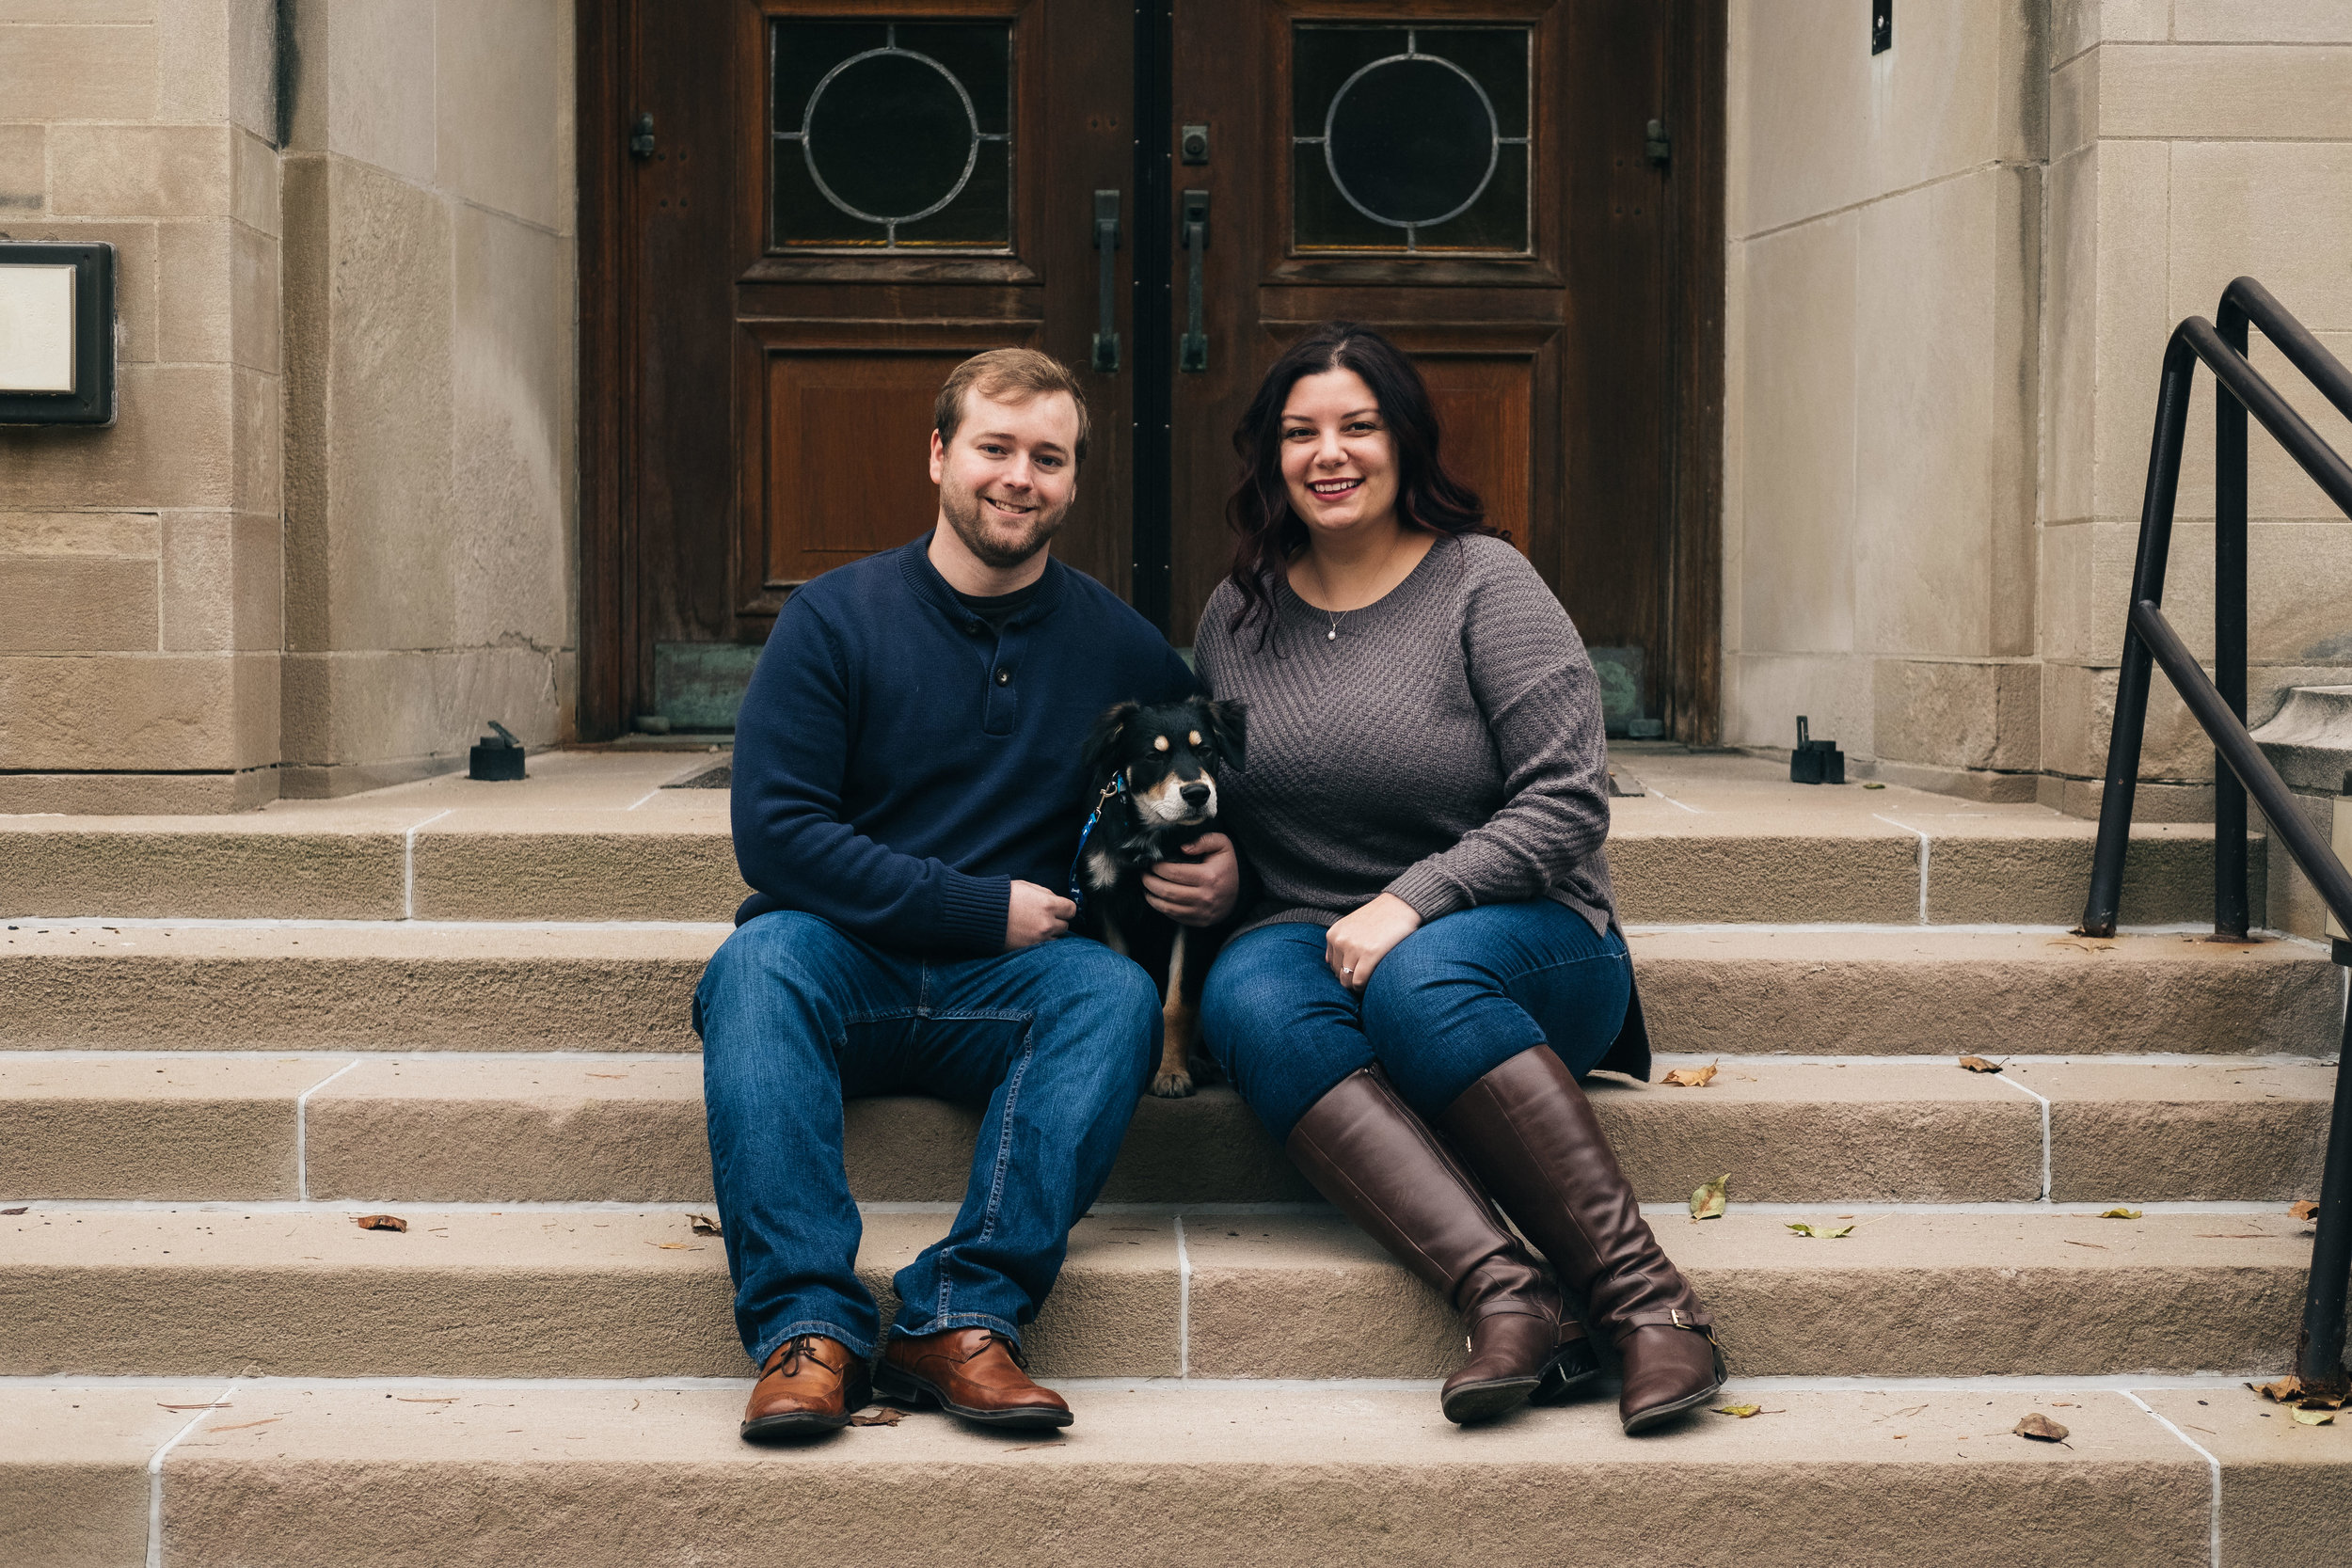 Cute dog joins in on the engagement session in downtown Toledo, Ohio.